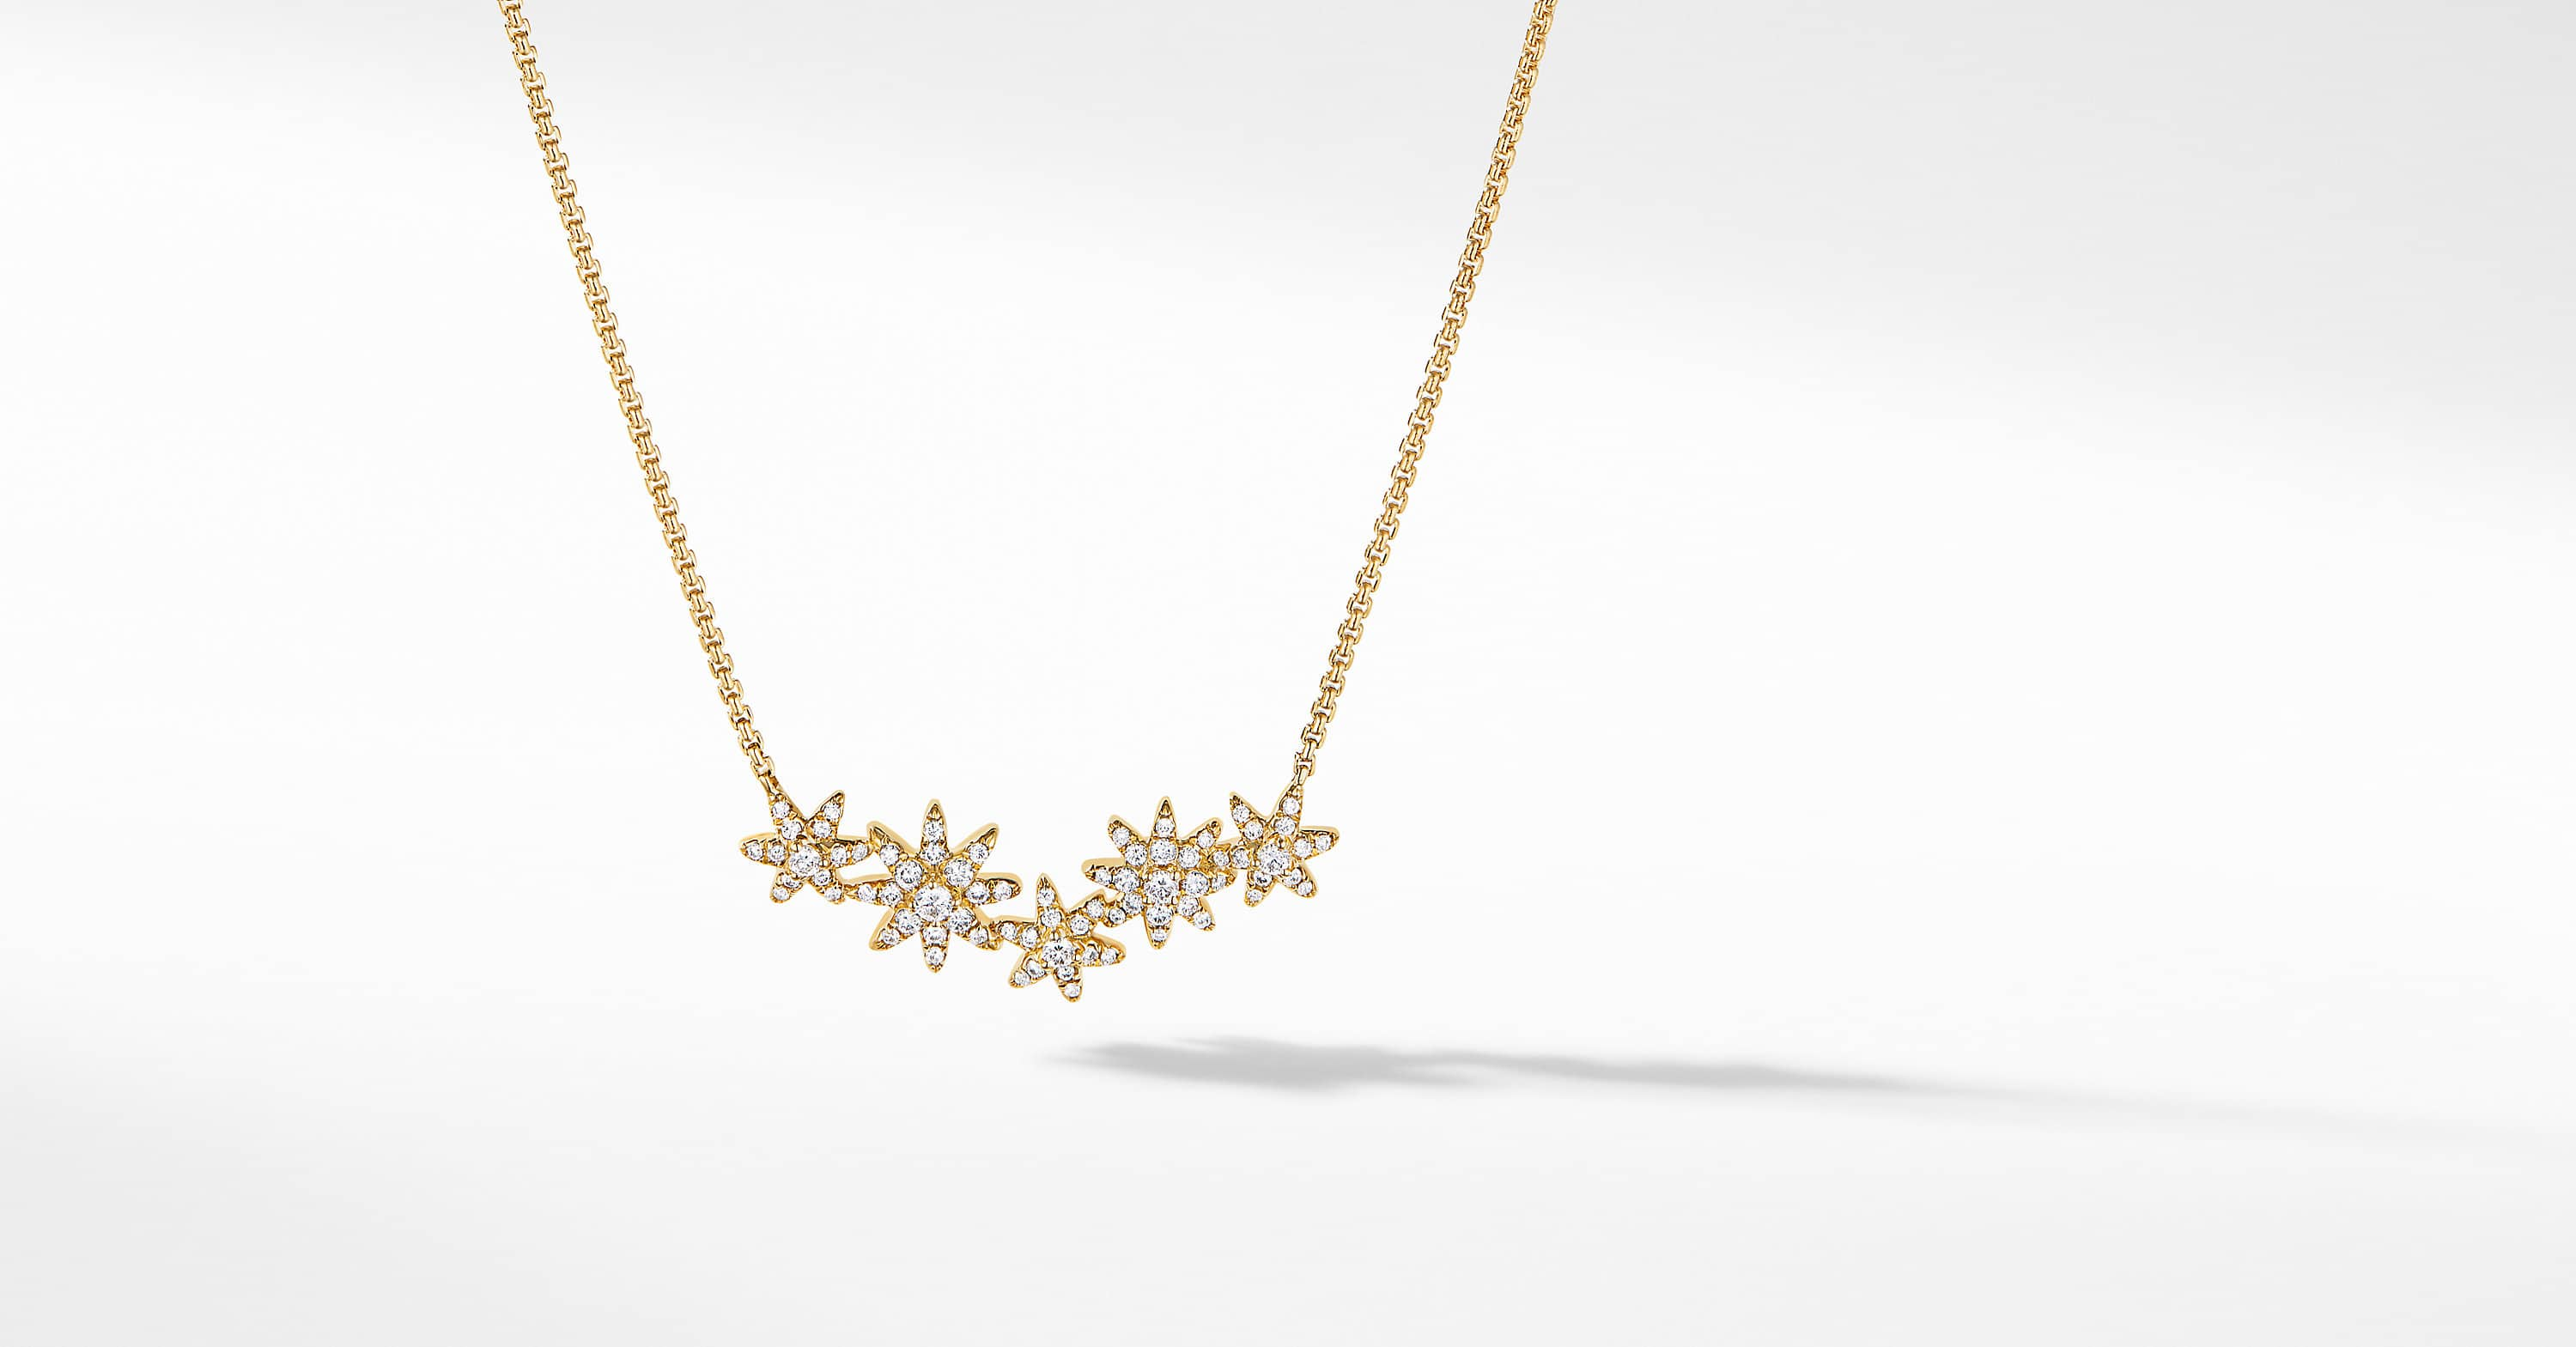 Starburst Cluster Station Necklace in 18K Yellow Gold with Diamonds